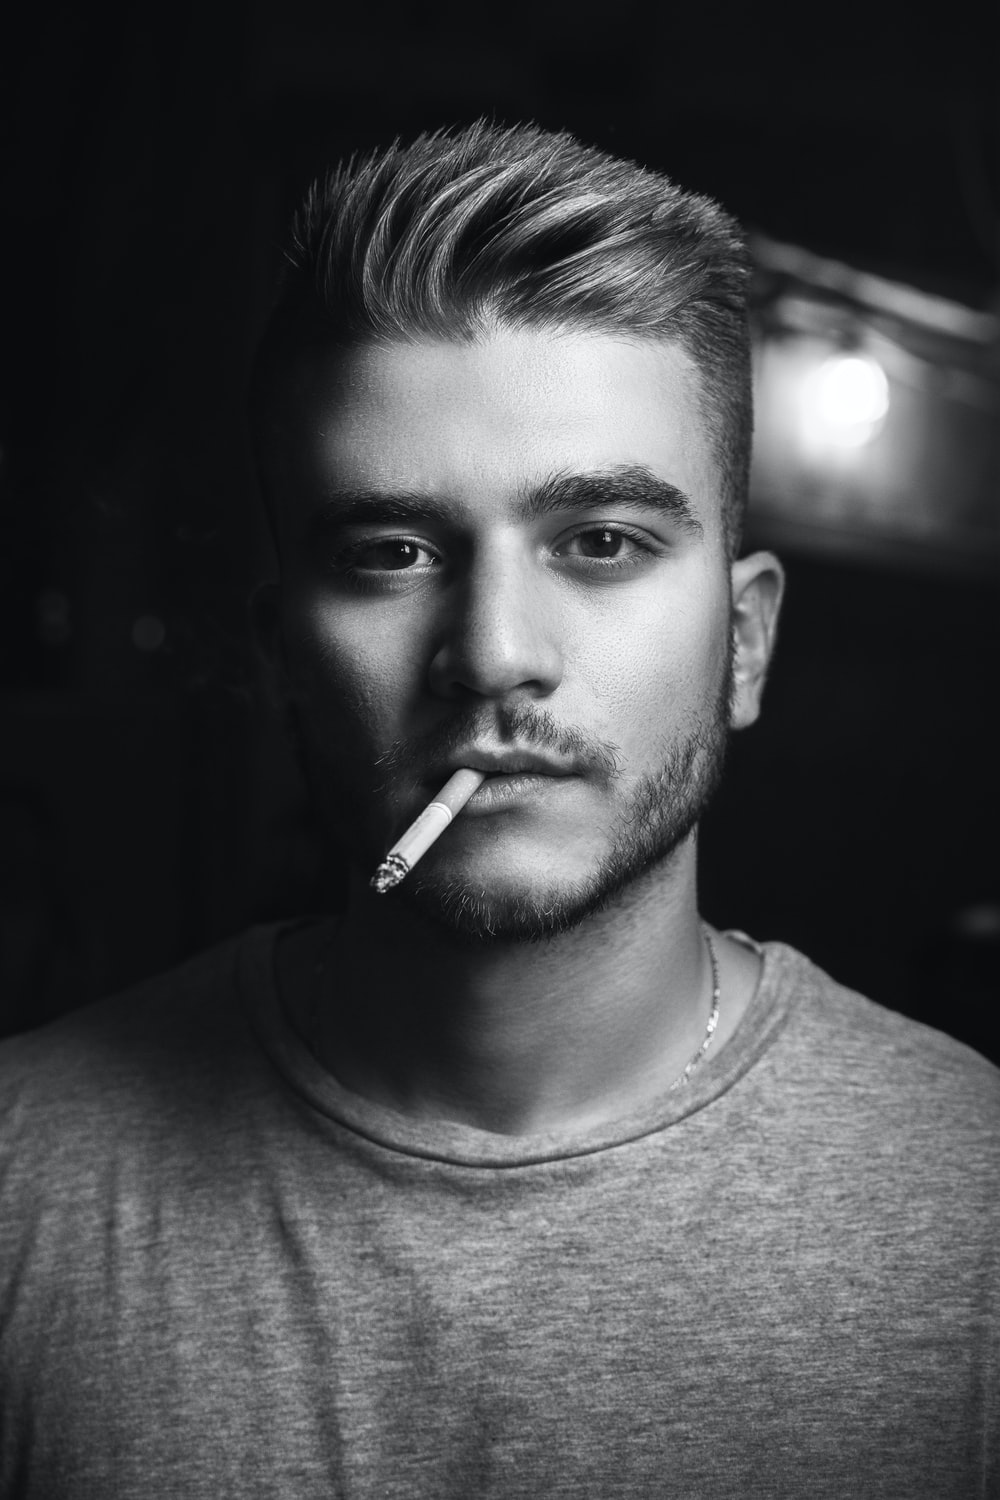 grayscale photography of man smoking while taking picture